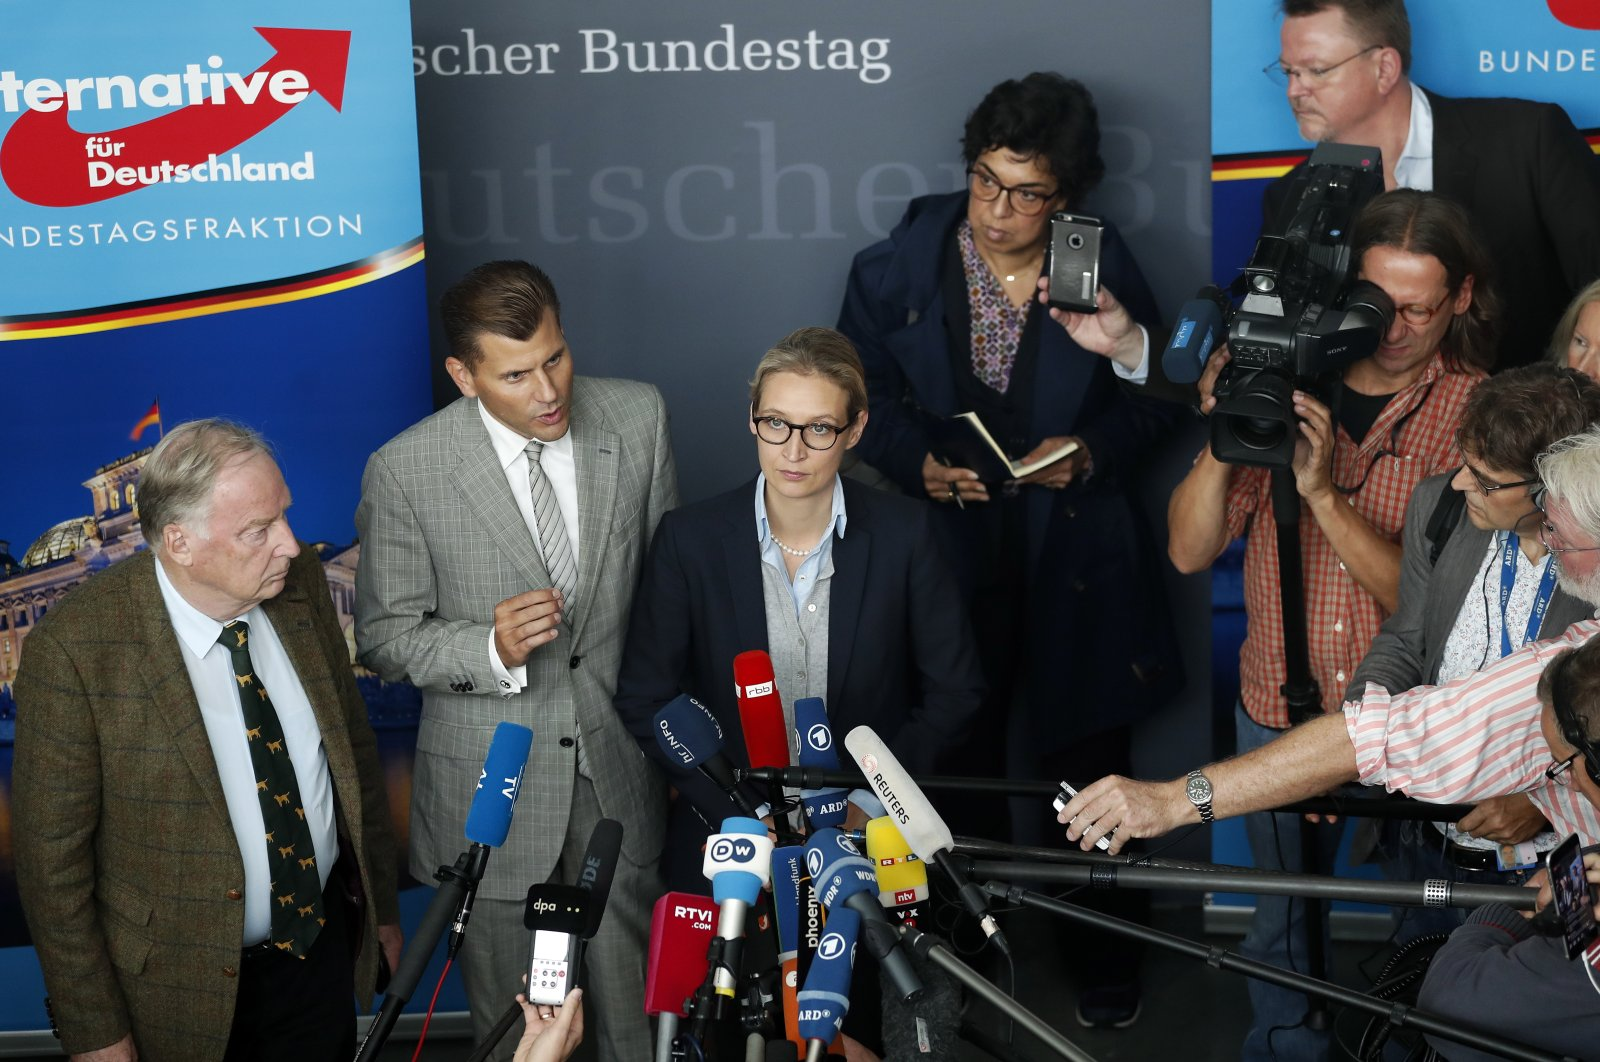 Christian Lueth (2nd from L), spokesman of the German right-wing populist party Alternative for Germany (AfD), and the co-top candidates for the general elections Alice Weidel (C) and Alexander Gauland (L) address the media prior to the first parliamentary group meeting of the party, in Berlin, Germany, Sept. 26, 2017. (EPA Photo)